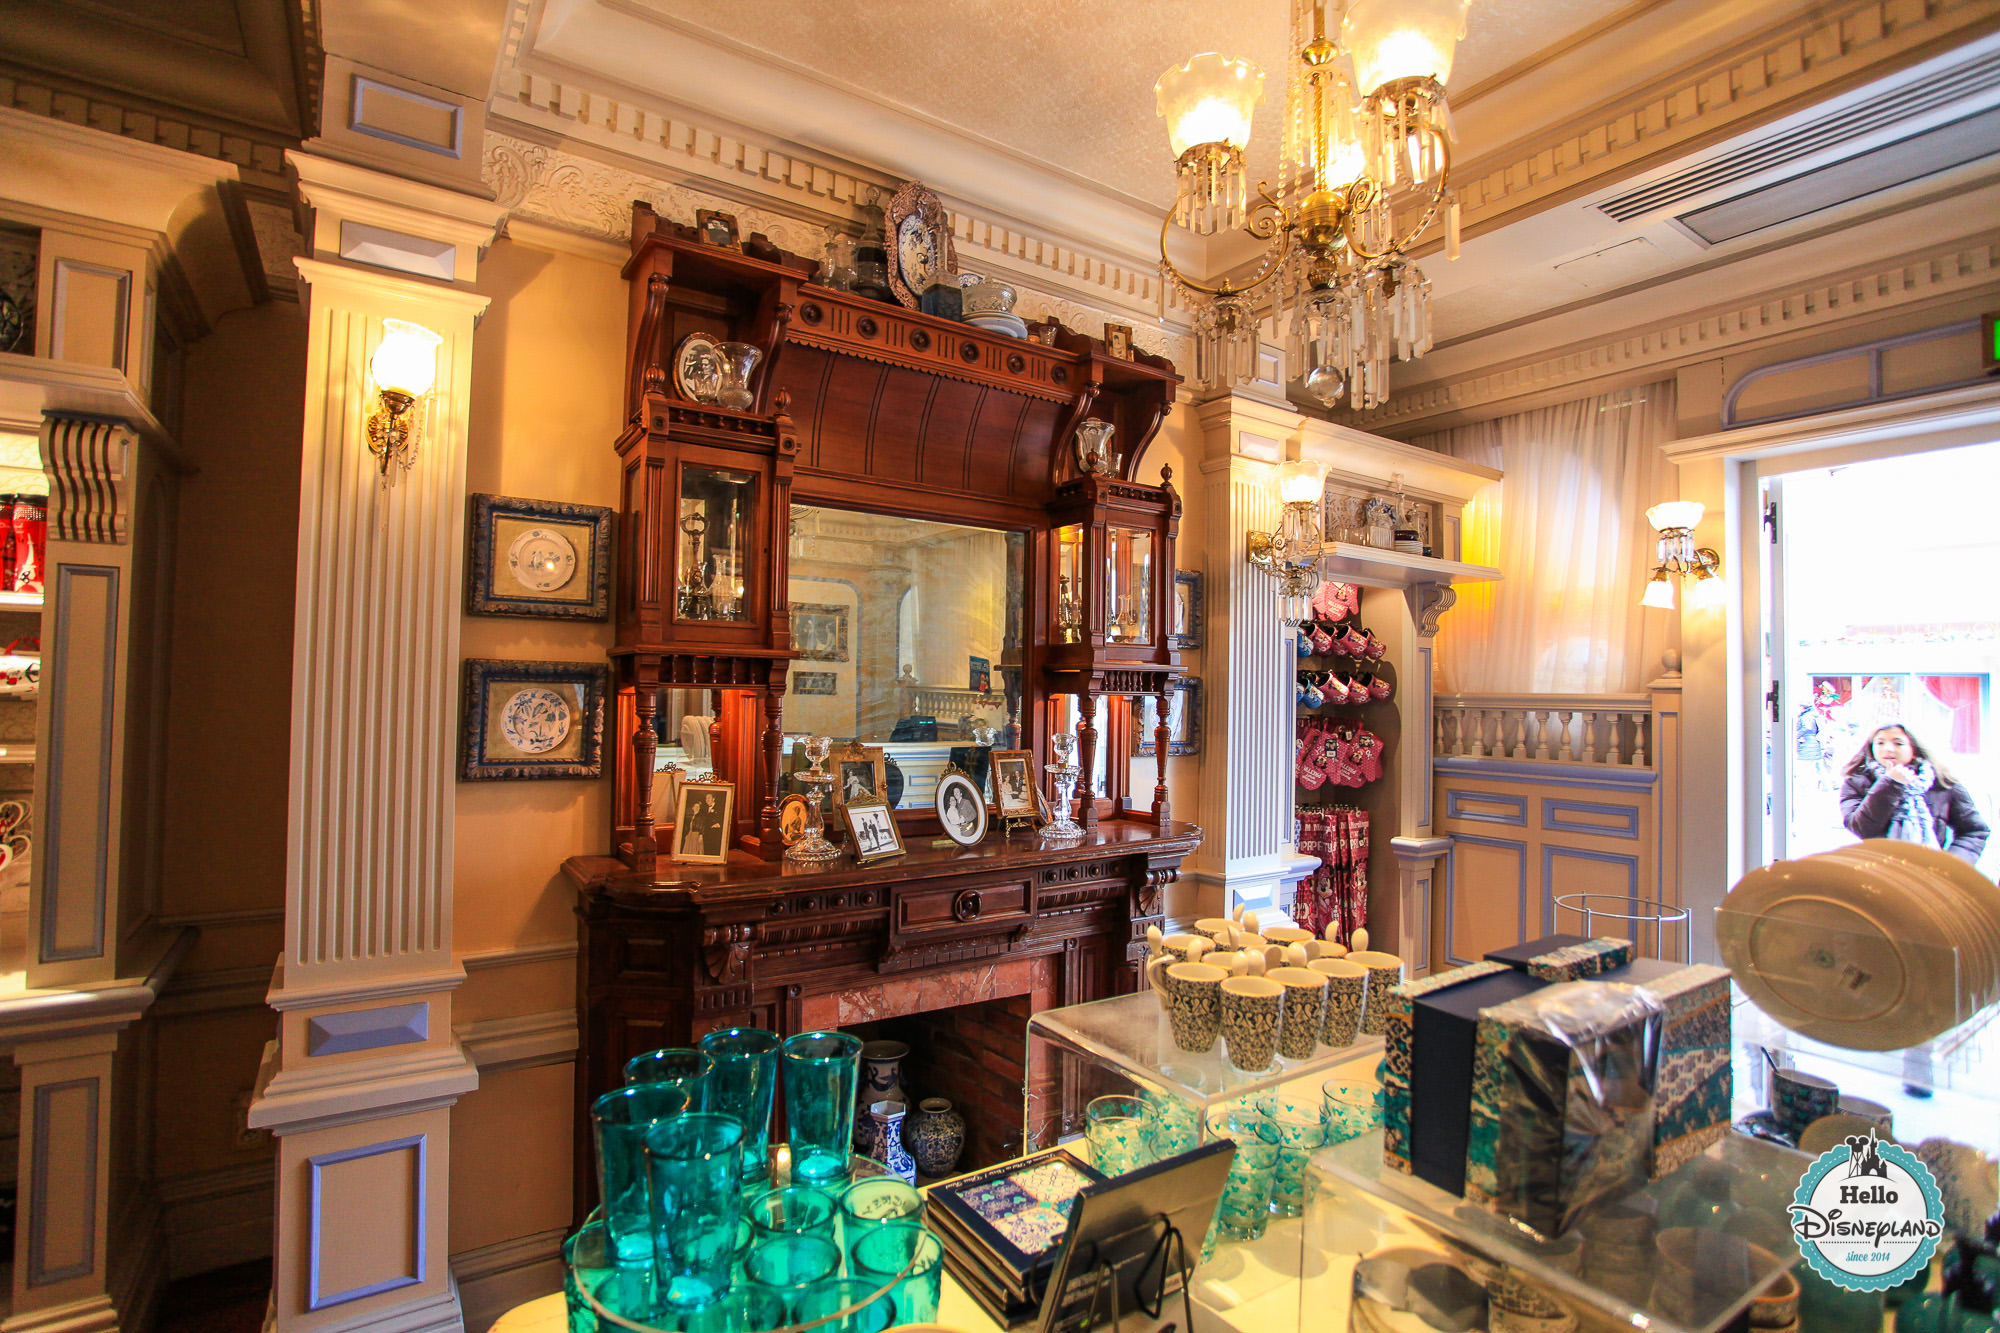 lillys-boutique-disneyland-paris-5